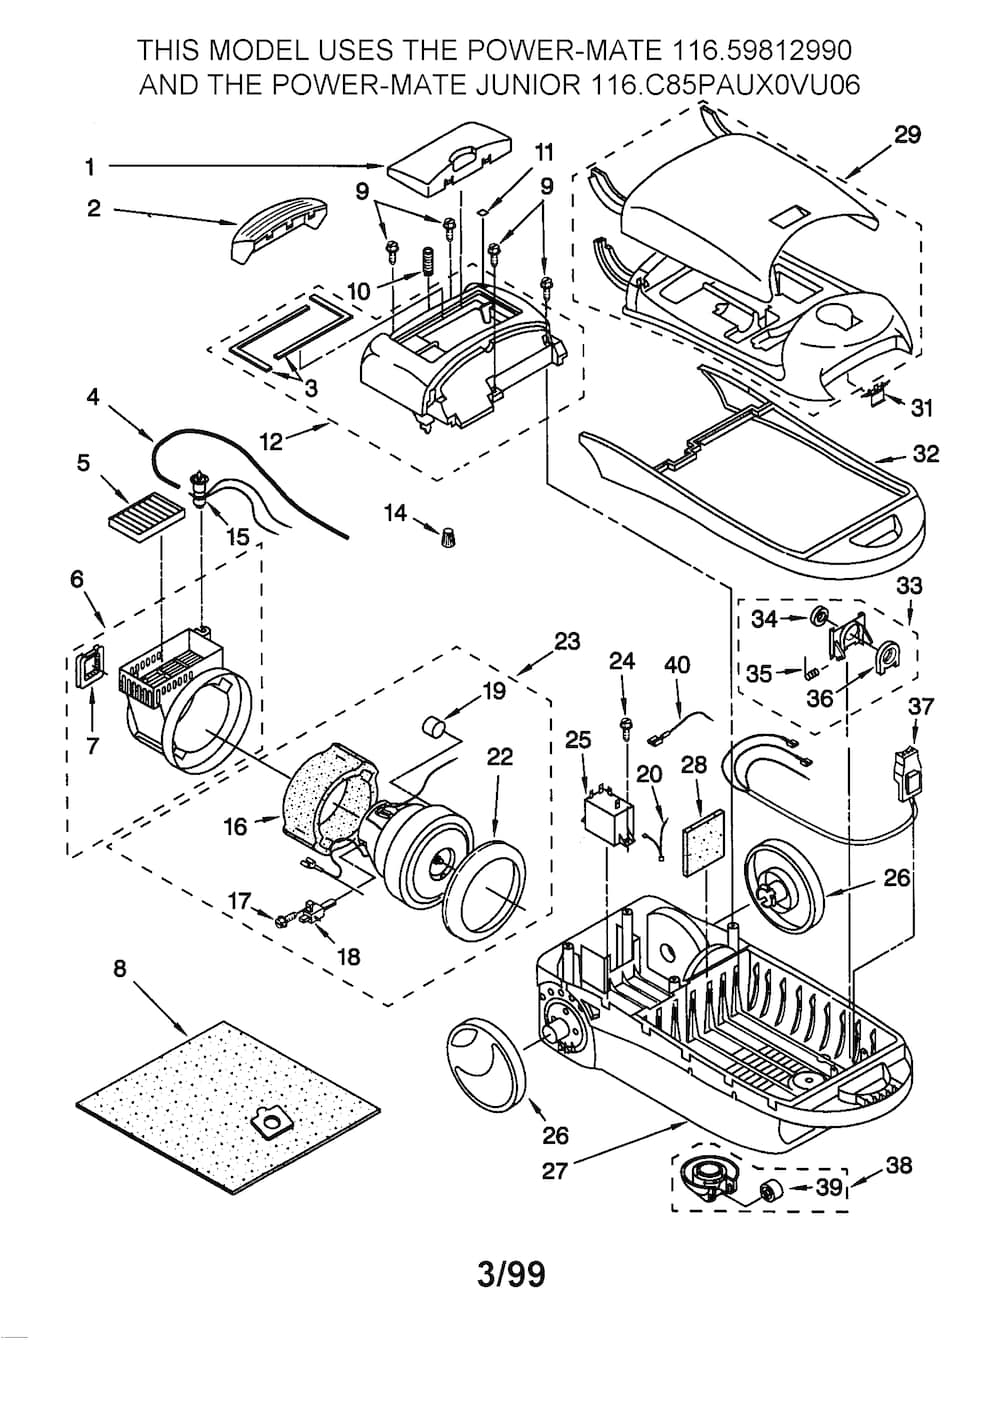 Kenmore Canister Vacuum Cleaner Parts | Model 11629812990 | Sears intended for Kenmore Vacuum Model 116 Parts Diagram